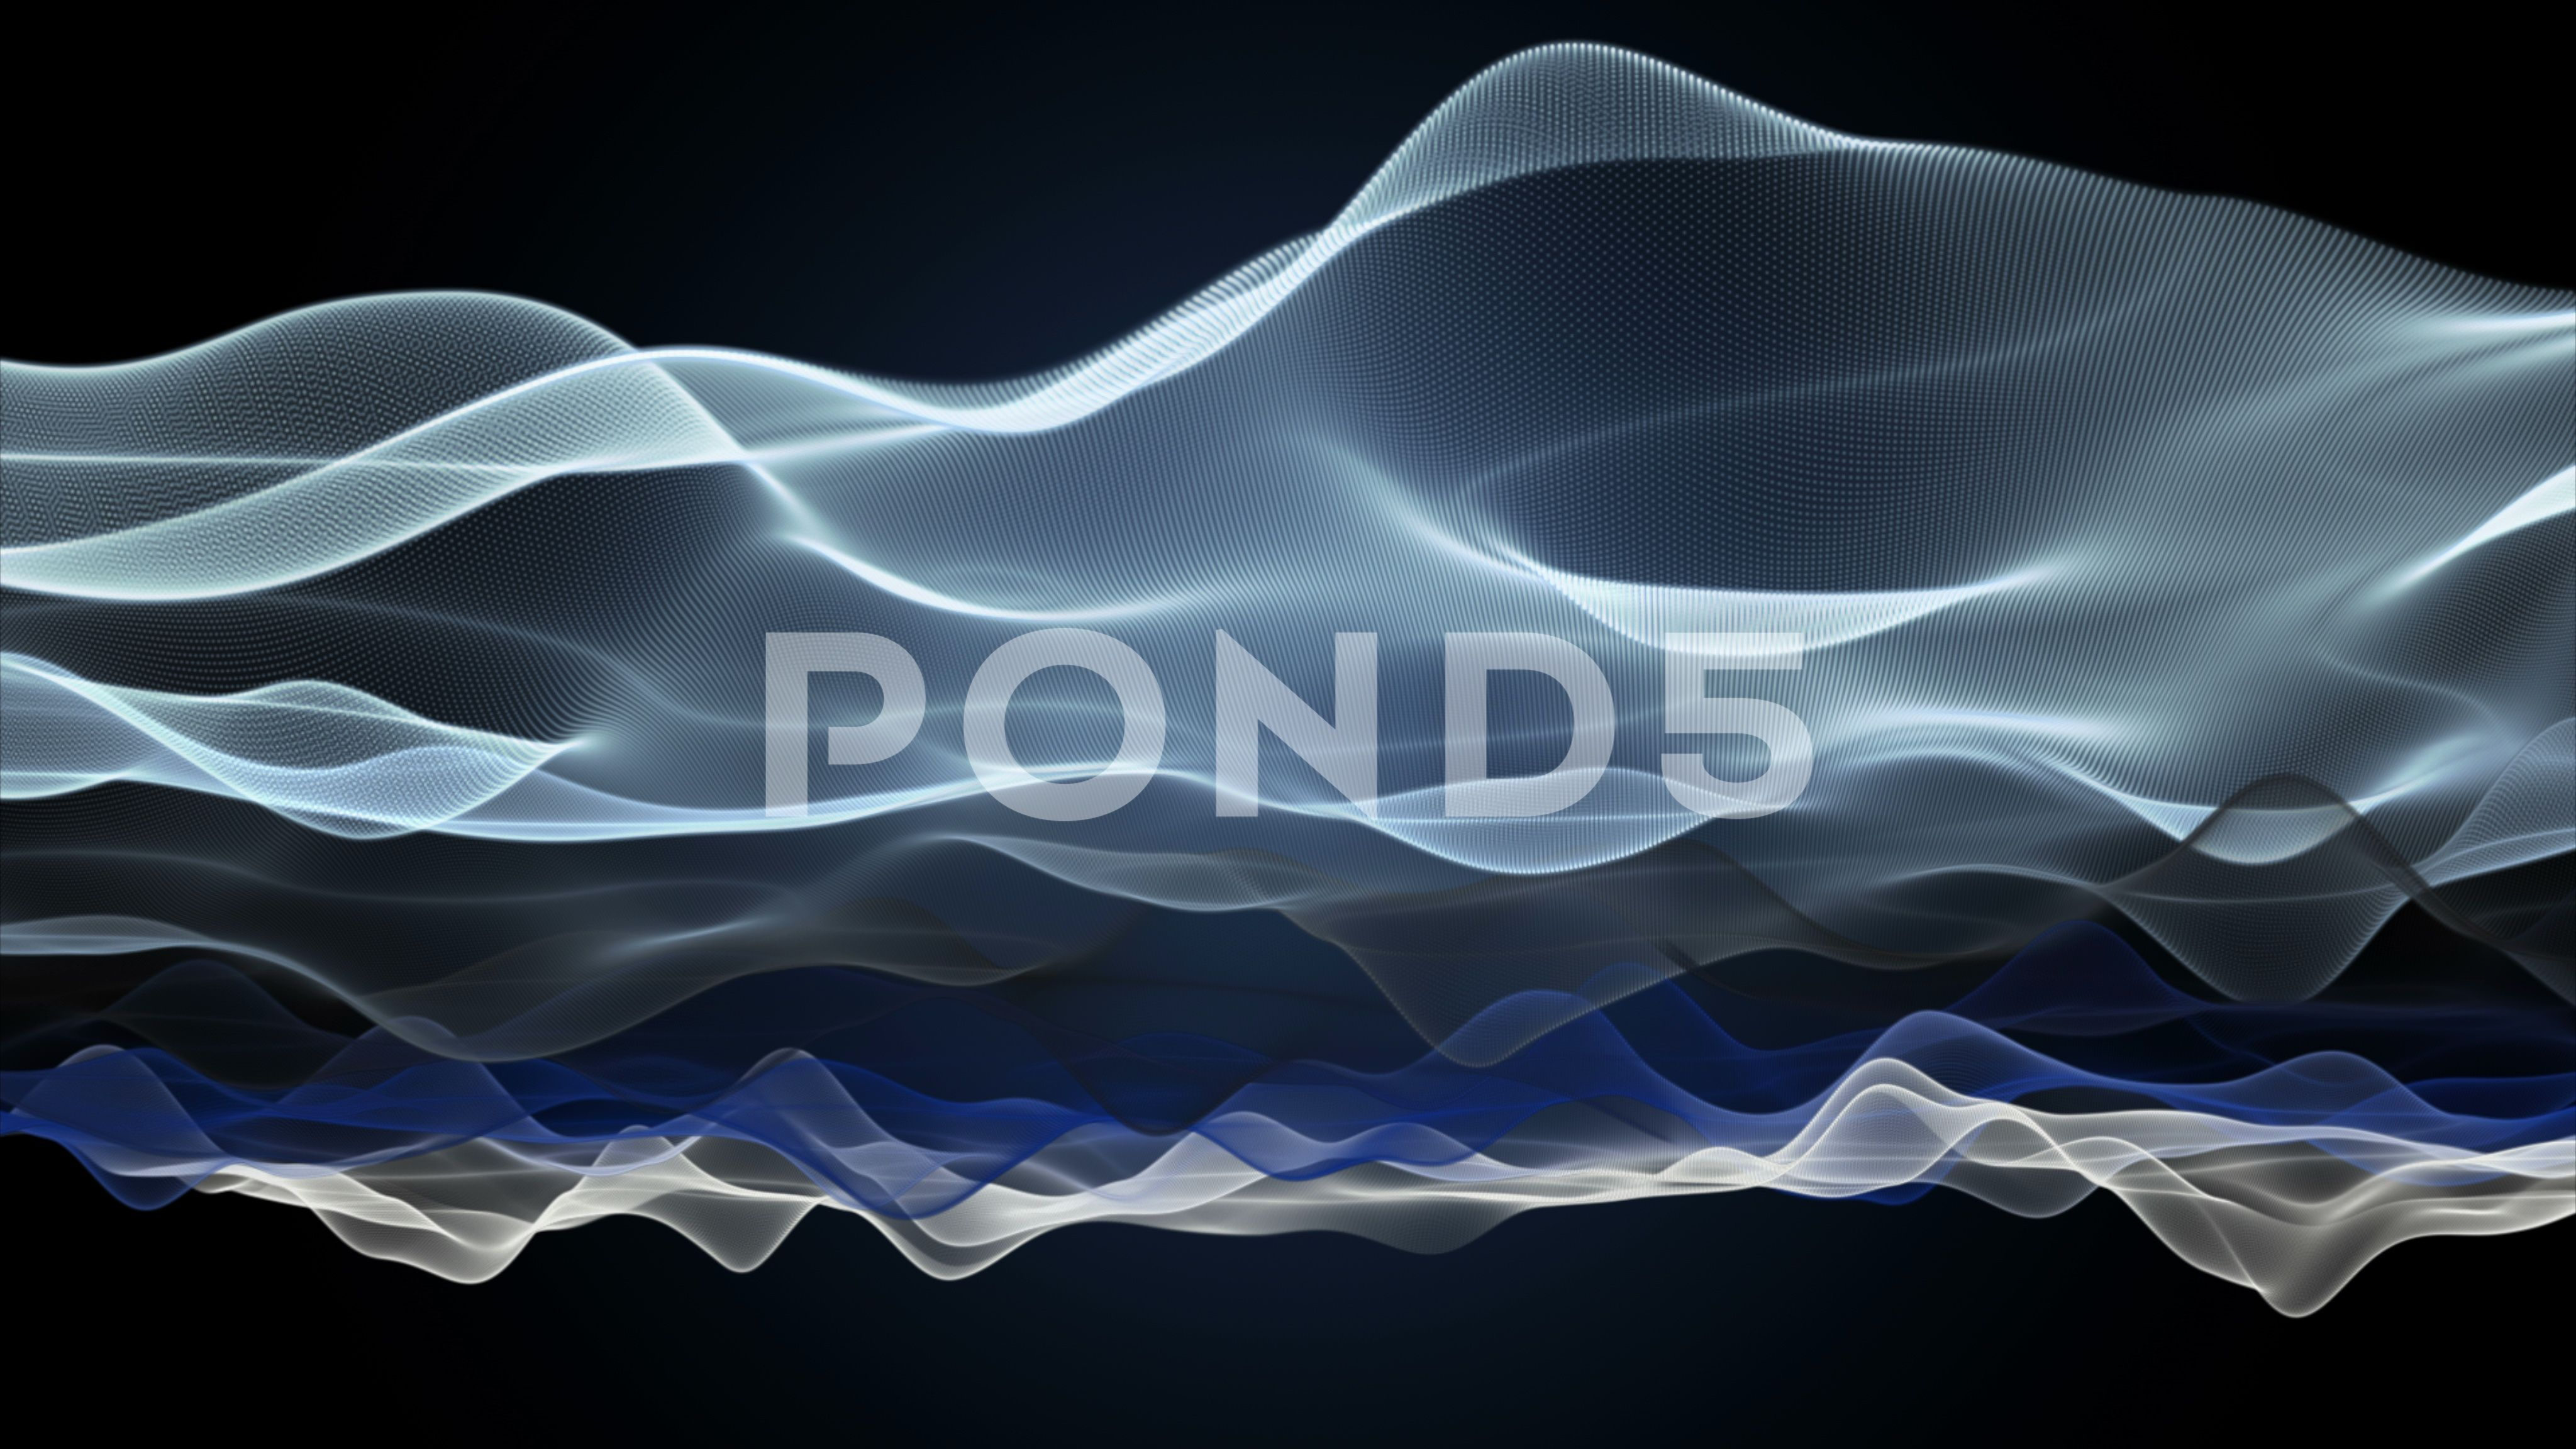 Wonderful animation with wave object in slow motion, 4096x2304 loop